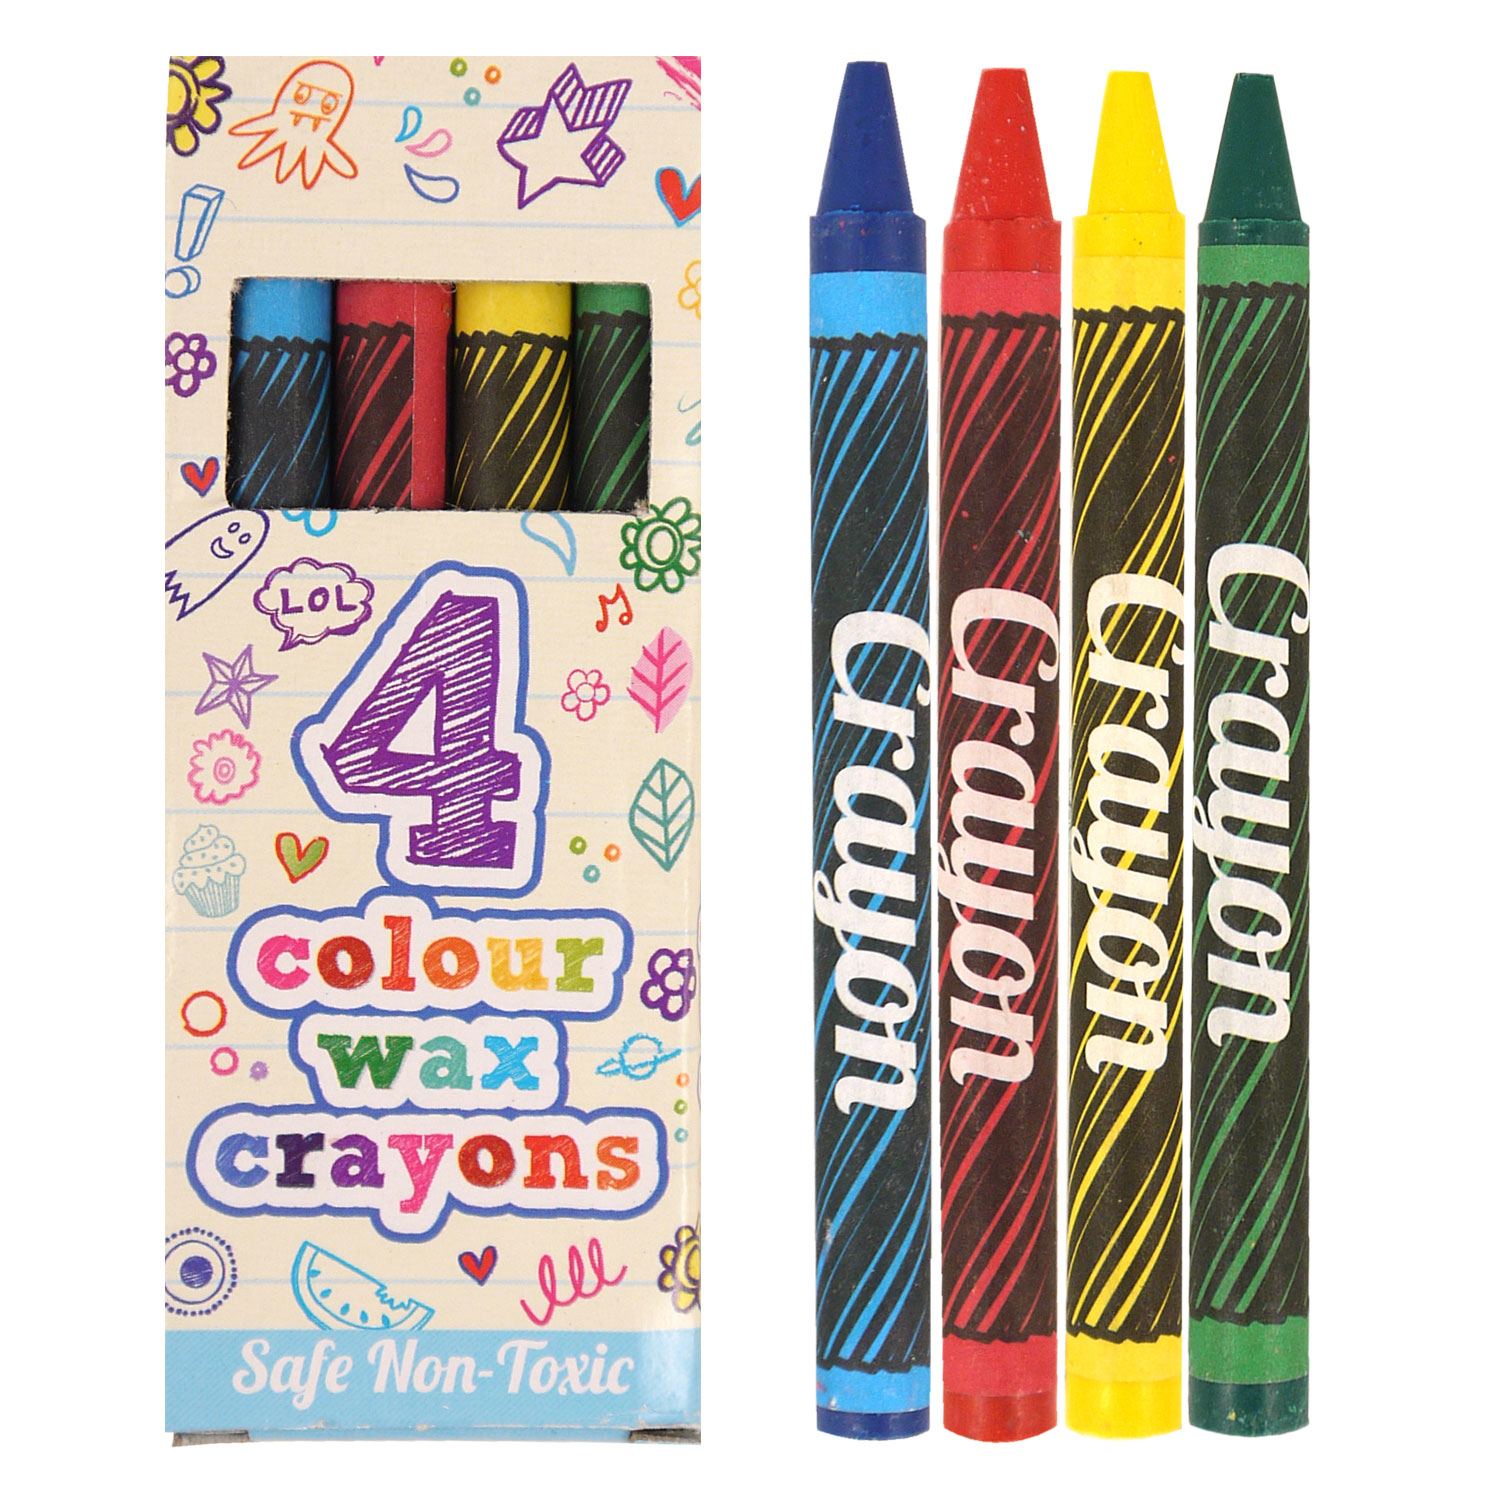 Box of 4 Wax Crayons.  Each crayon measures 9cm length.